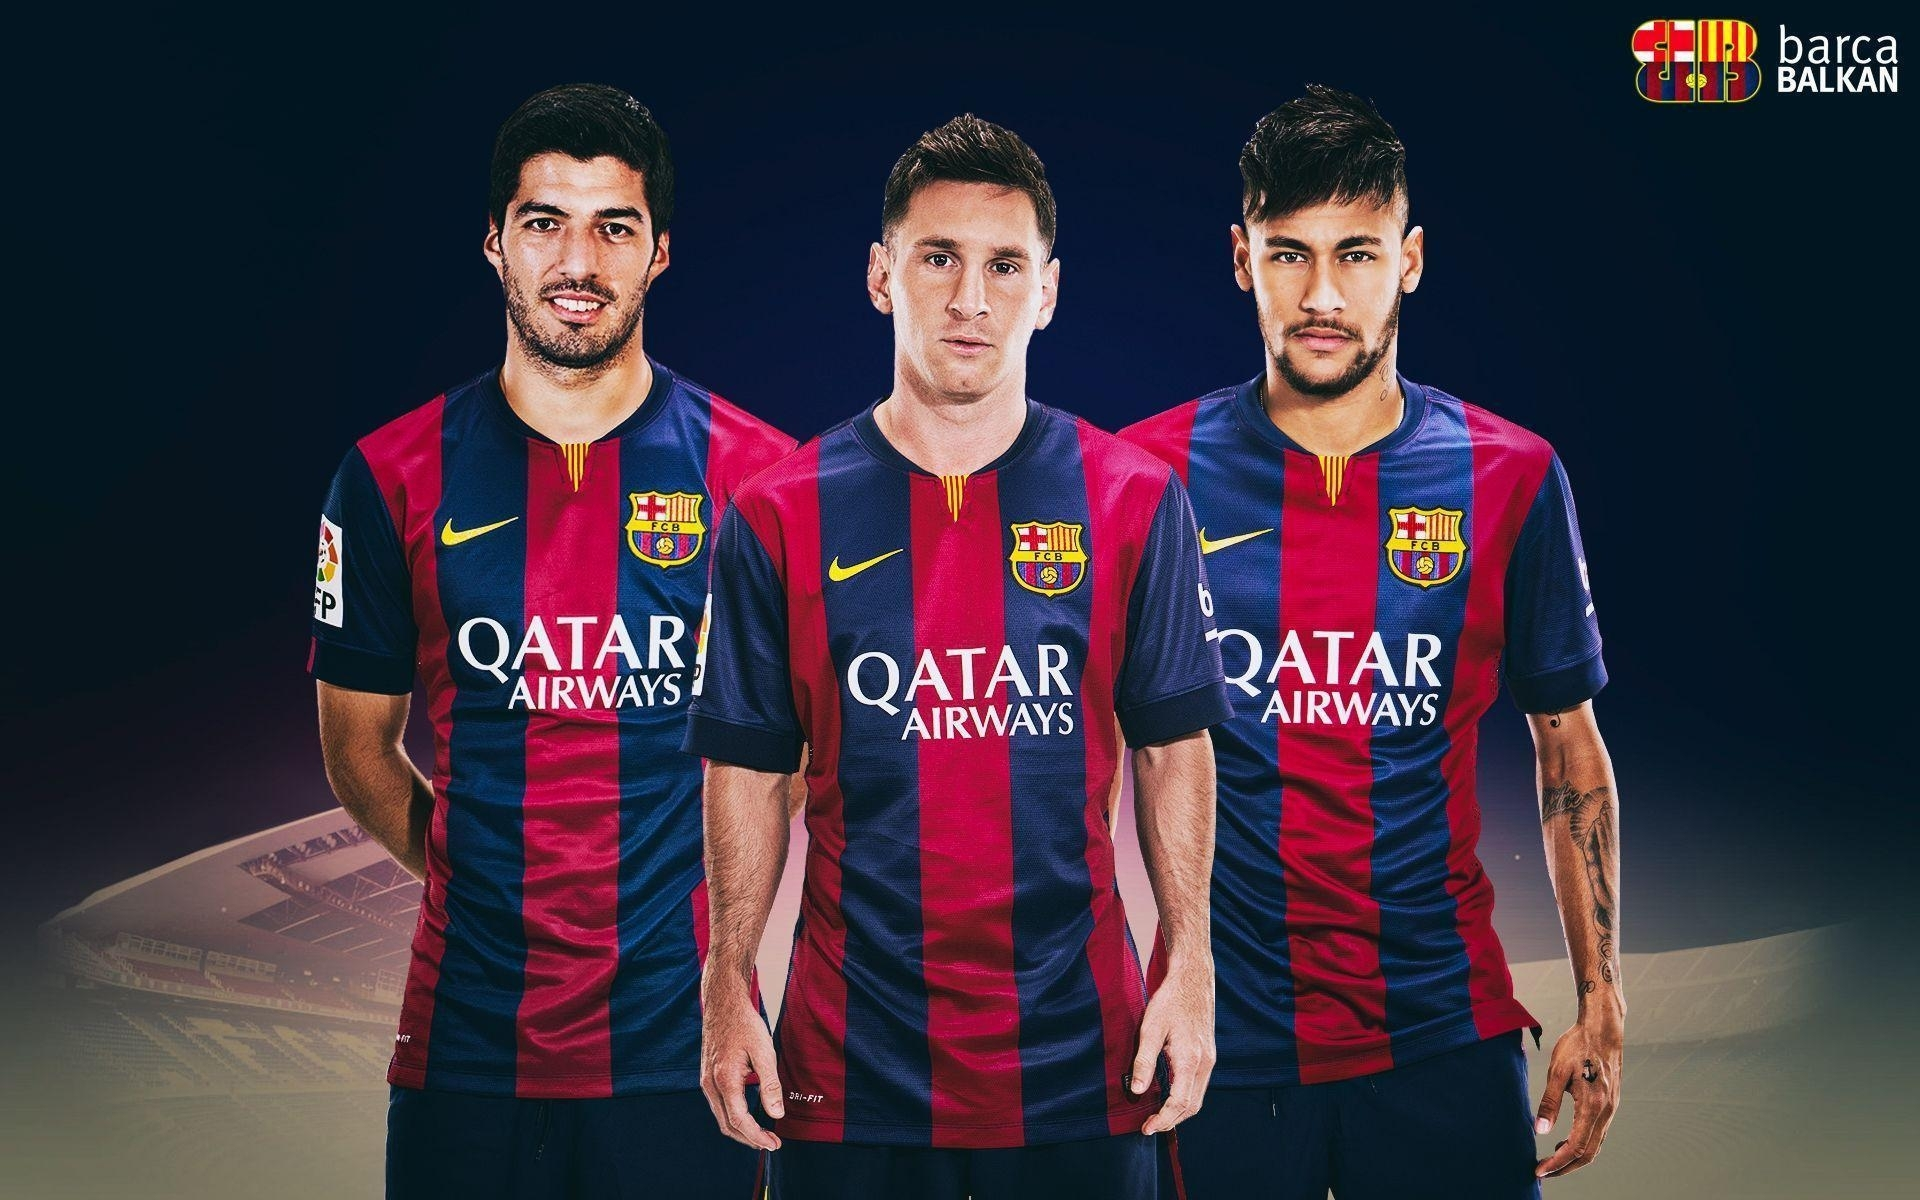 10 Latest Messi Neymar And Suarez Wallpaper FULL HD 1920×1080 For PC Background